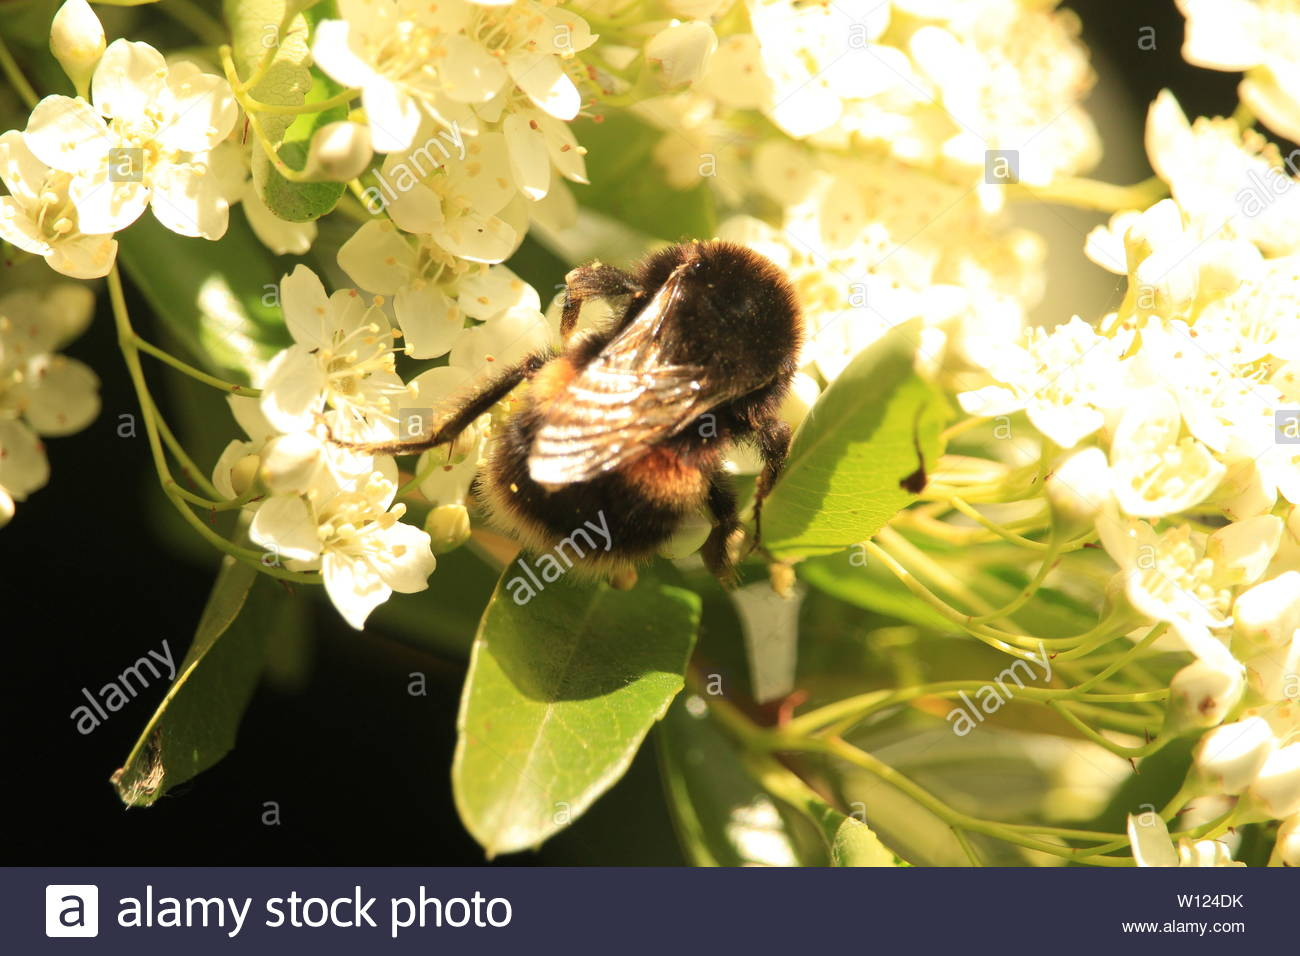 A bumble bee forages on the underside of apple tree blossom - Stock Image